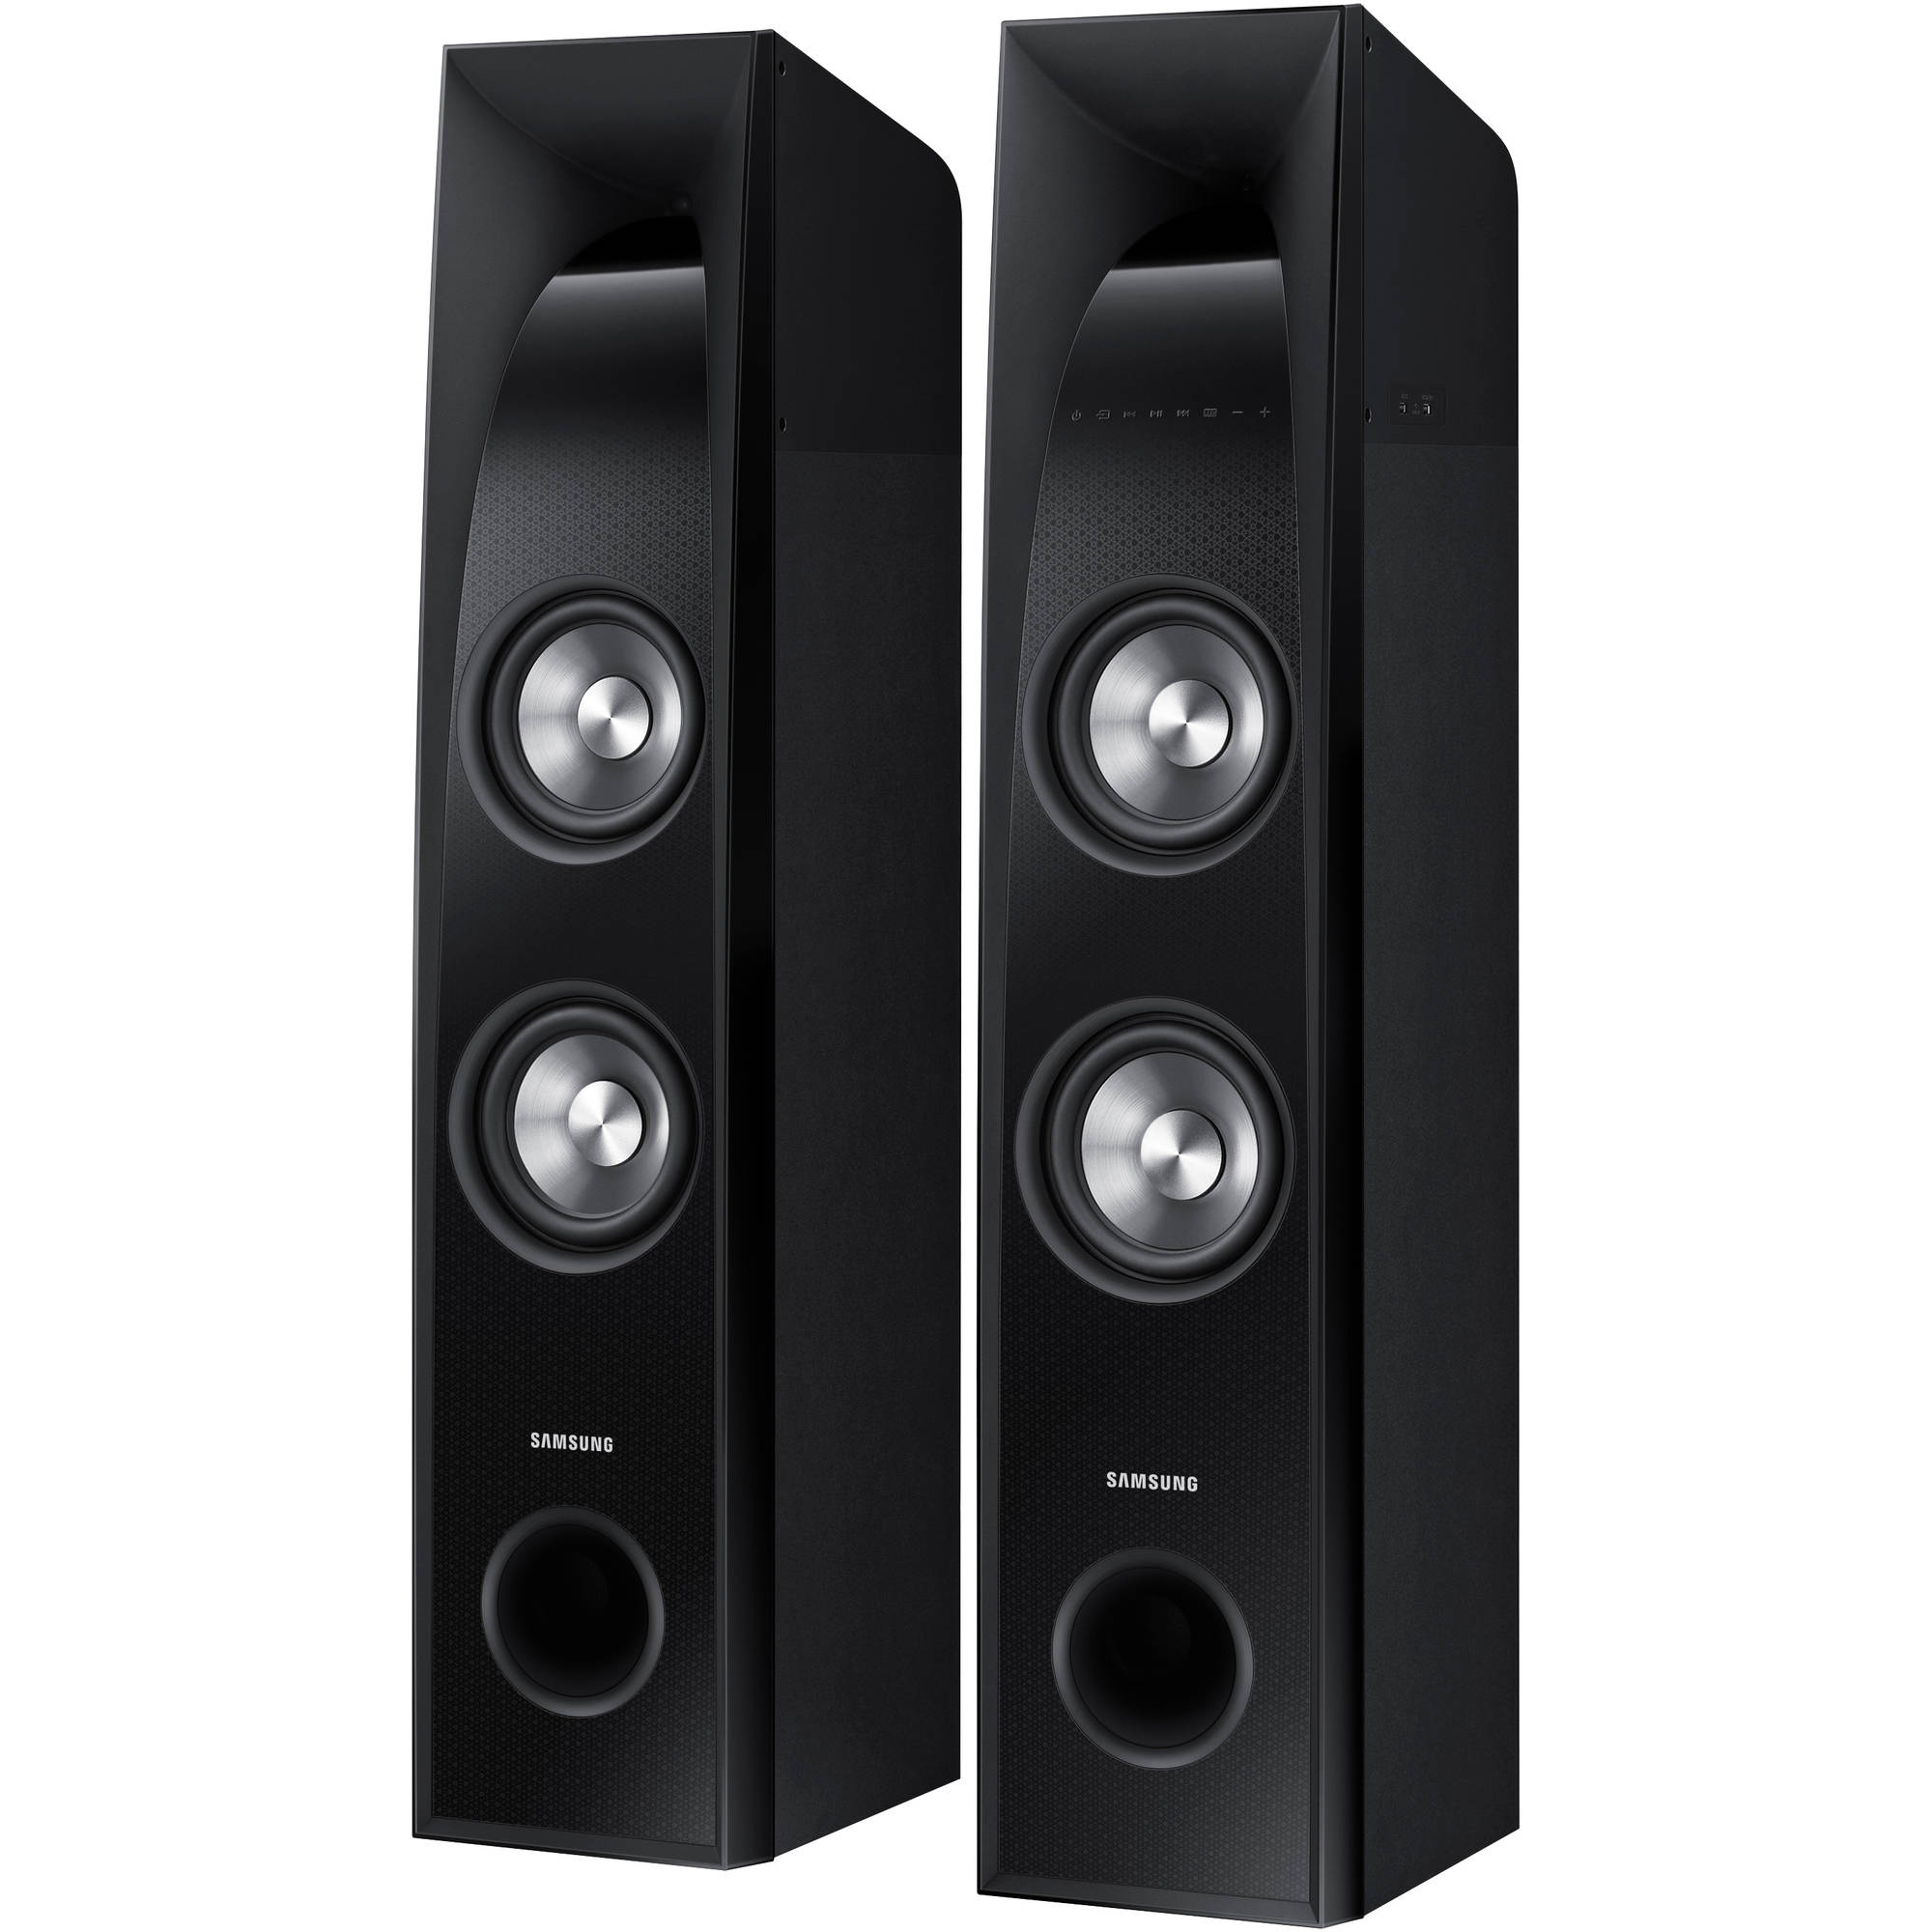 "SAMSUNG 2.2 Channel 350W Sound Tower with 6"" Subwoofer - TW-J5500/ZA"